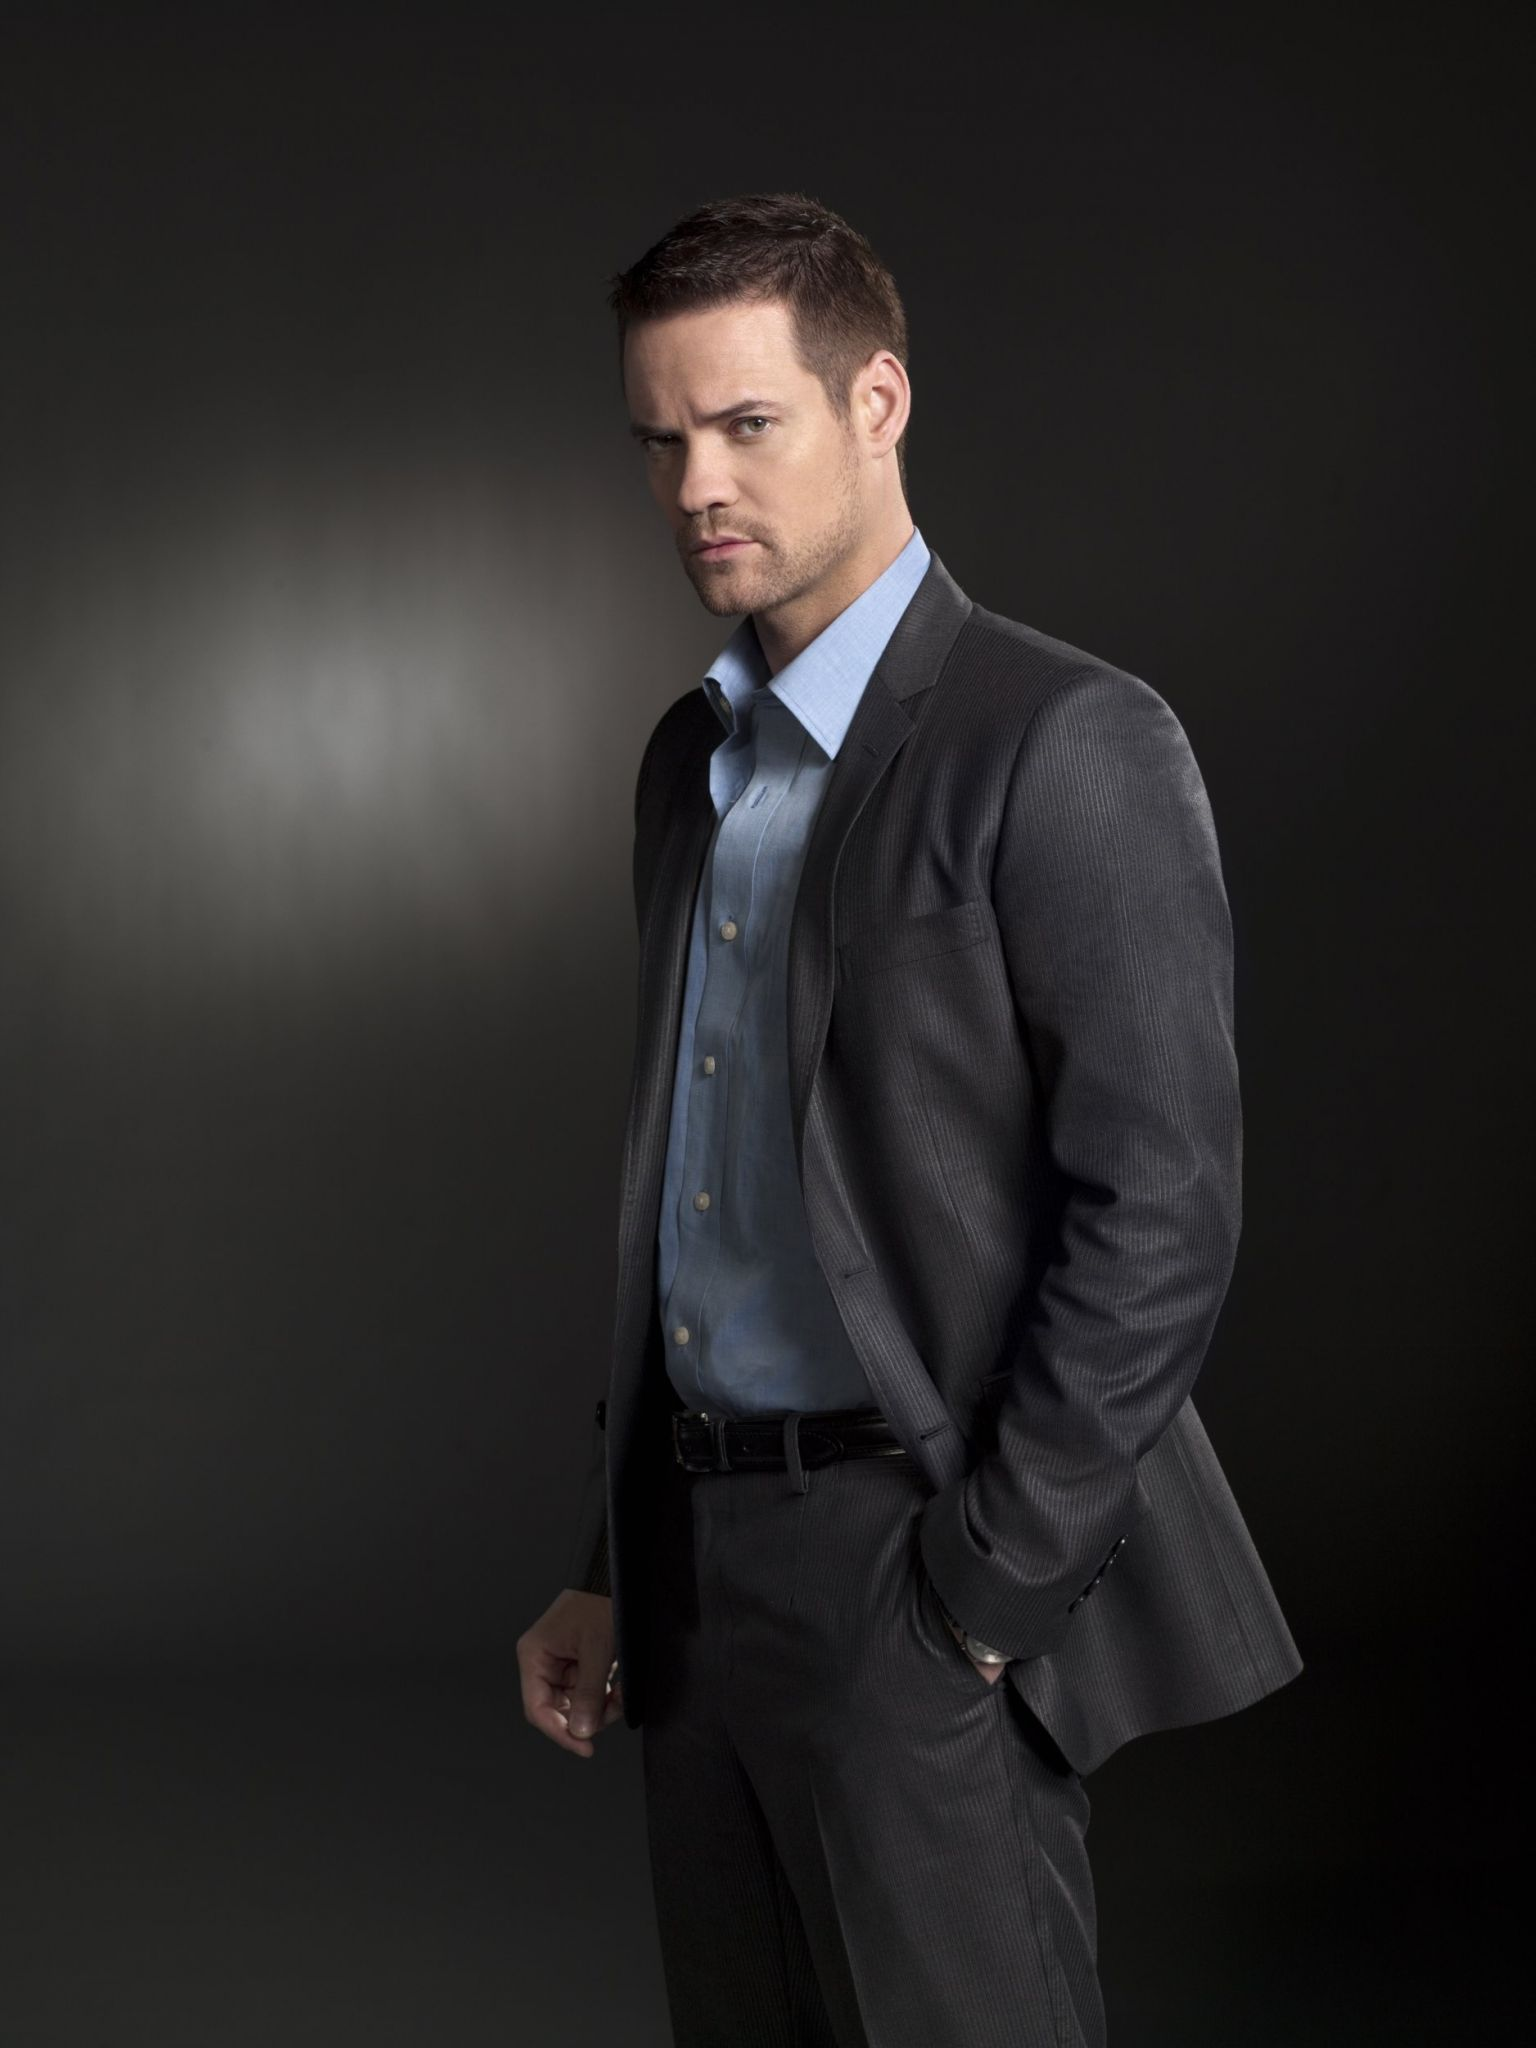 shane west a walk to remembershane west личная жизнь, shane west gif, shane west википедия, shane west and his wife, shane west you, shane west tumblr, shane west mandy moore, shane west net worth, shane west wikipedia, shane west фильмы, shane west movies, shane west interview, shane west dracula 2000, shane west a walk to remember, shane west fanfiction, shane west songs, shane west wiki, shane west movies and tv shows, shane west filmleri izle, shane west partner